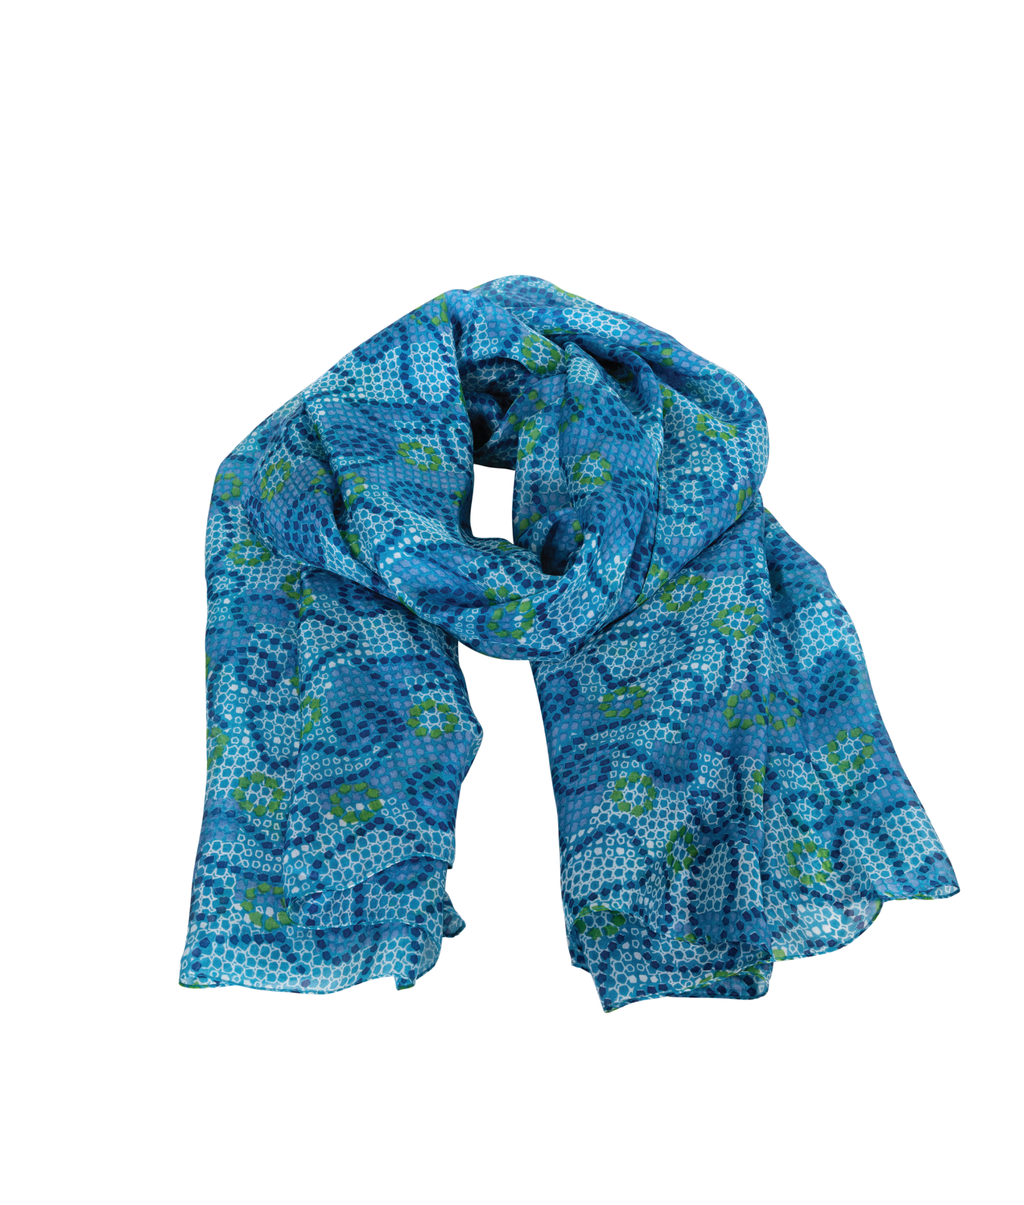 SILK Scarf - Botanical